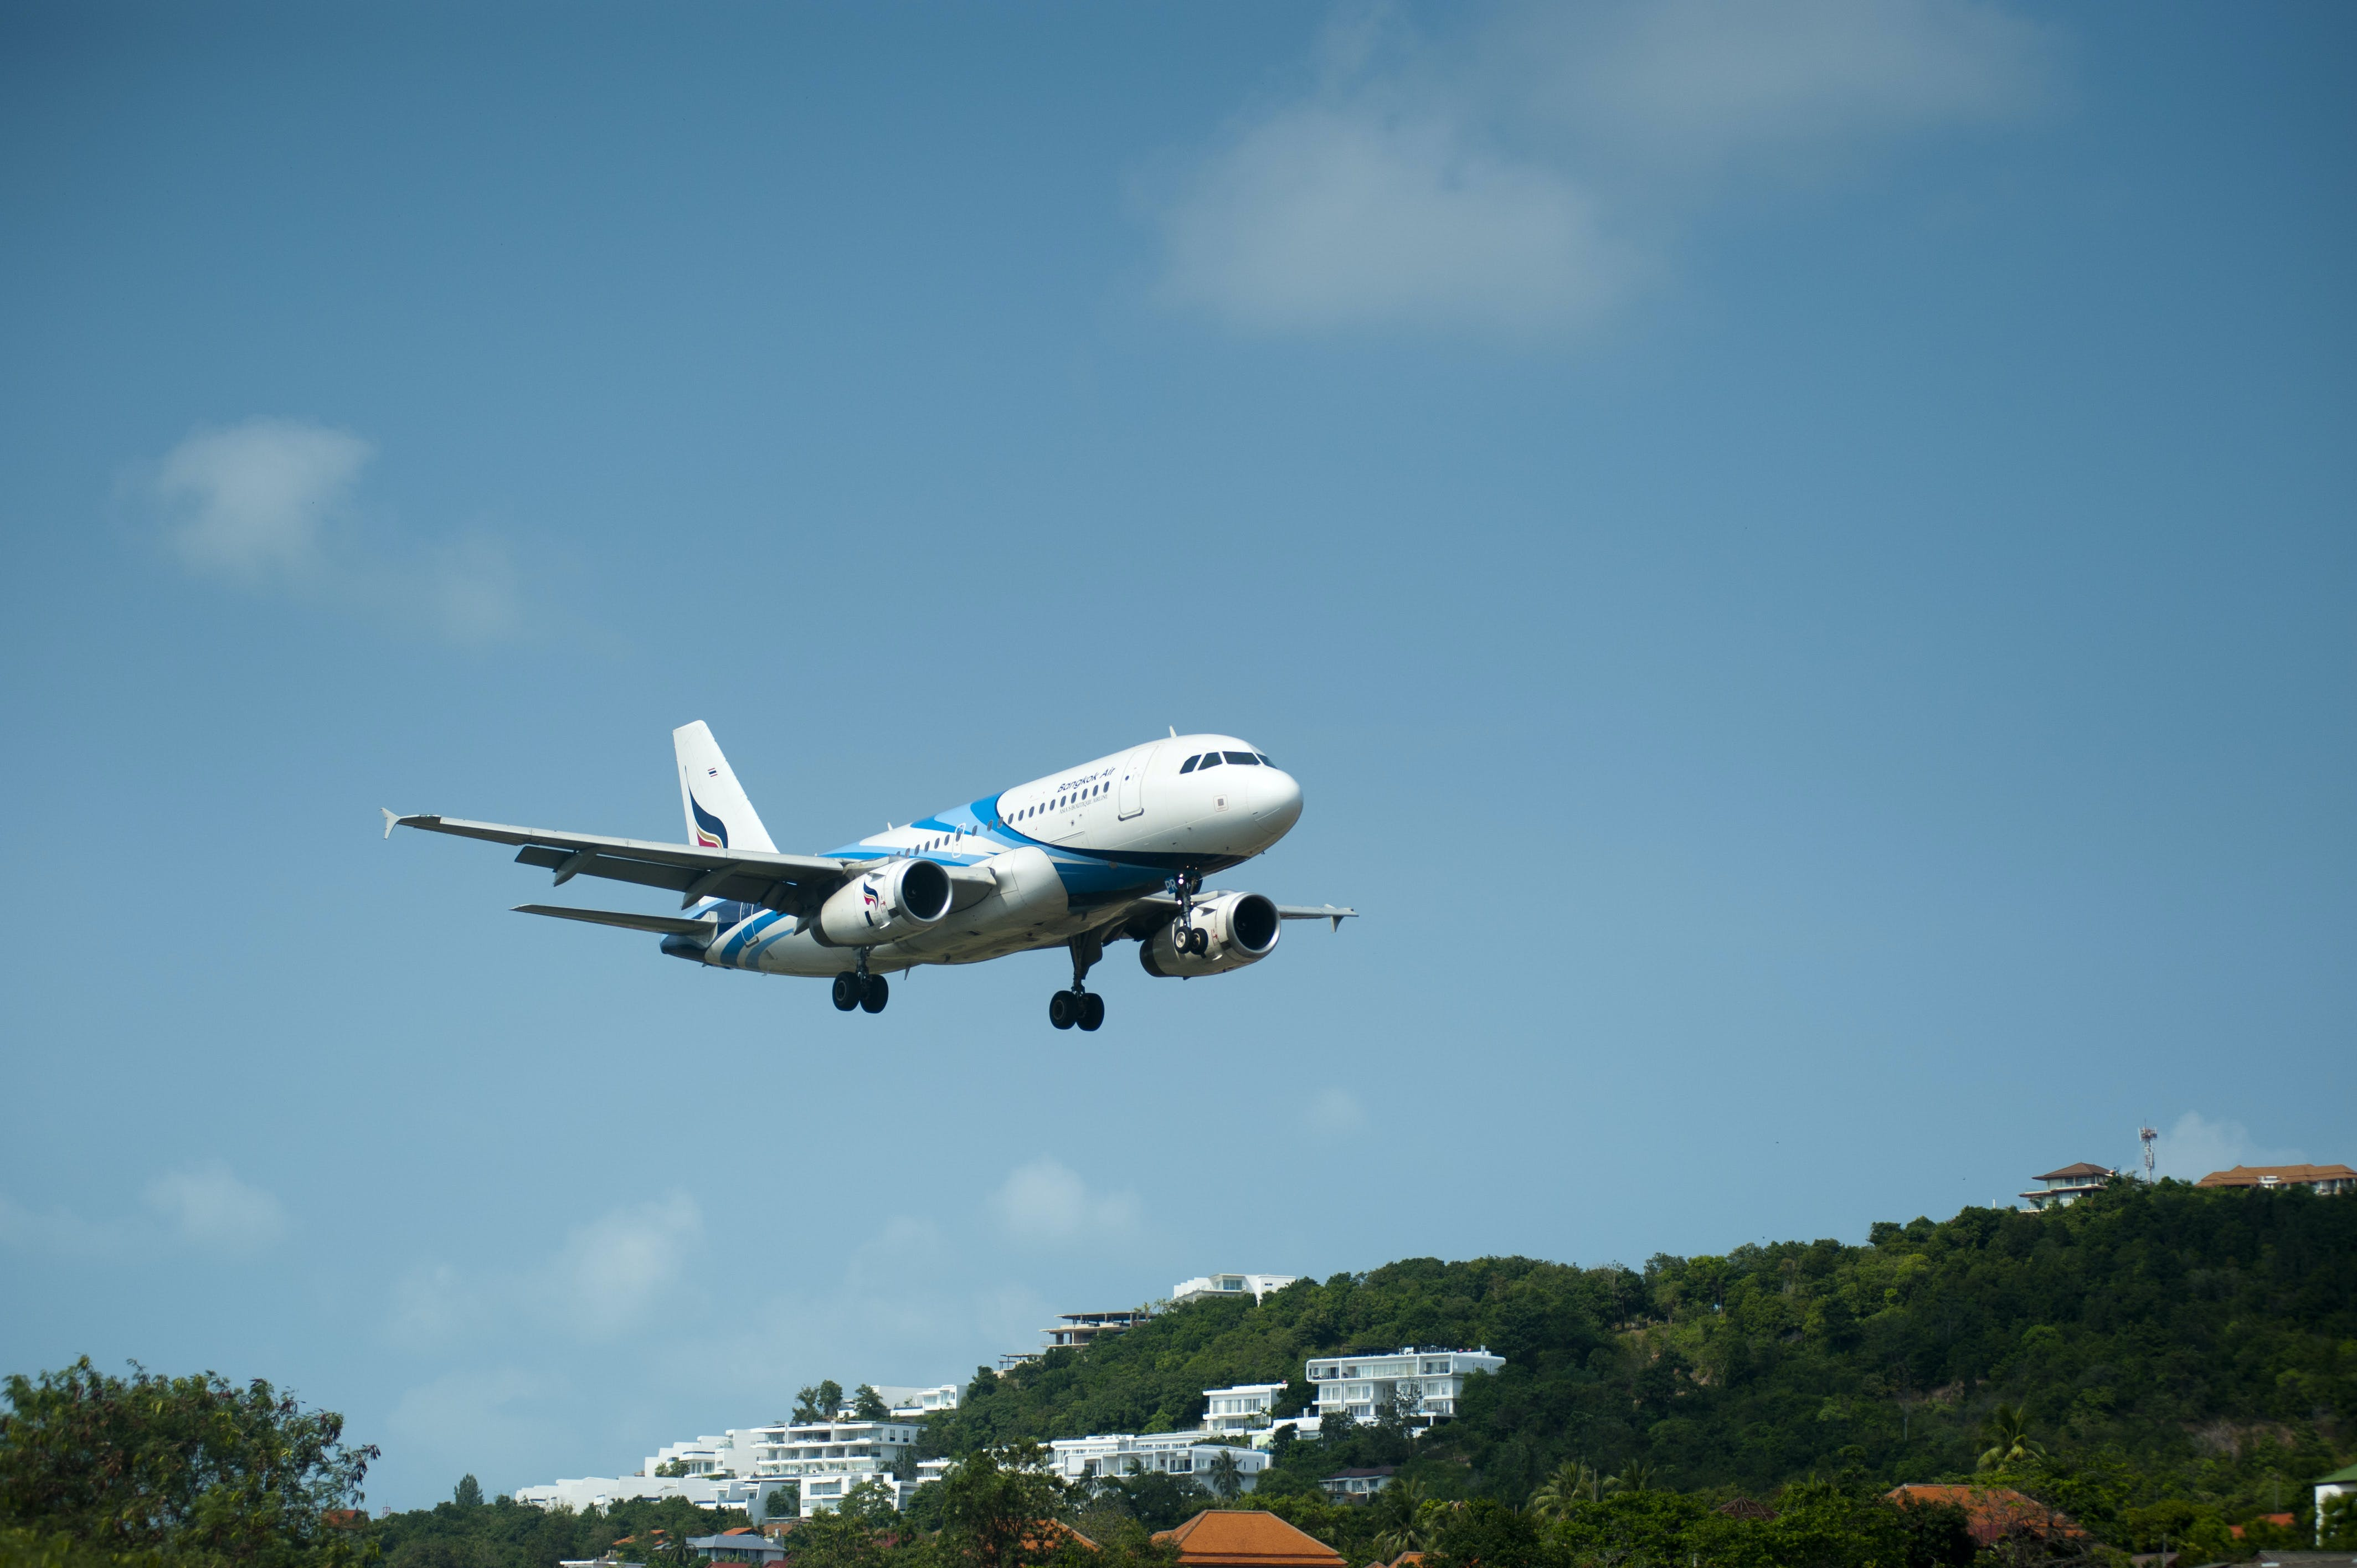 White and Blue Passenger Plane Passing Above Green Tree Covered Hill